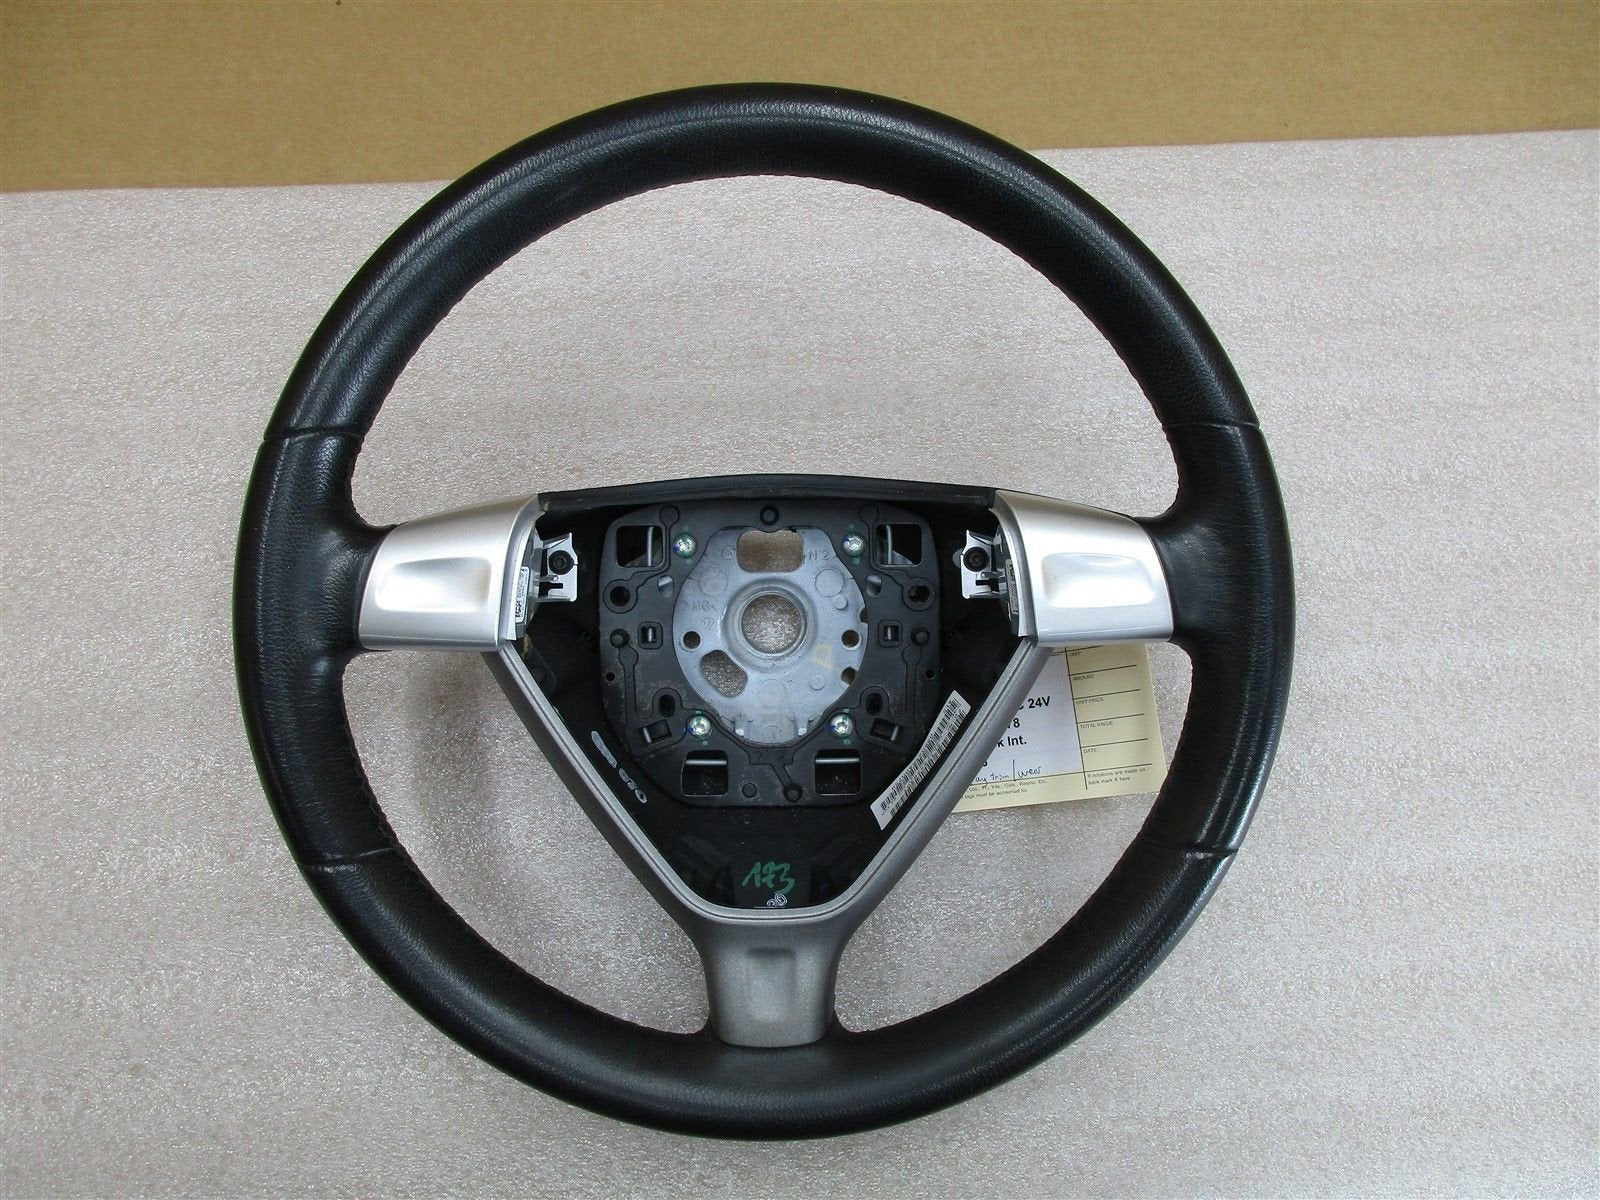 08 Cayman S RWD Porsche 987 3 SPOKE Leather STEERING WHEEL Black Silver 102,426